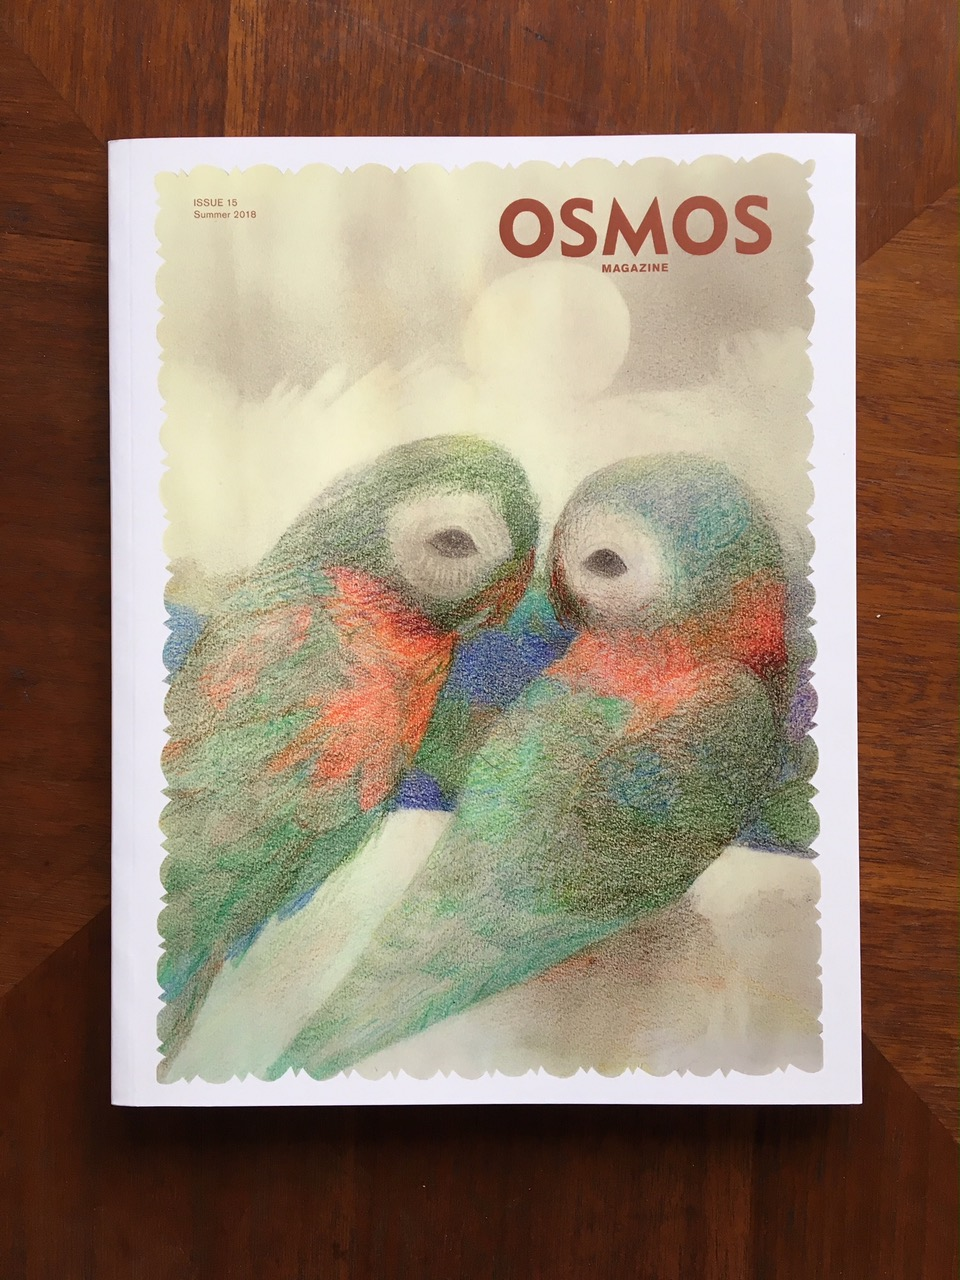 OSMOS 15 cover.jpeg